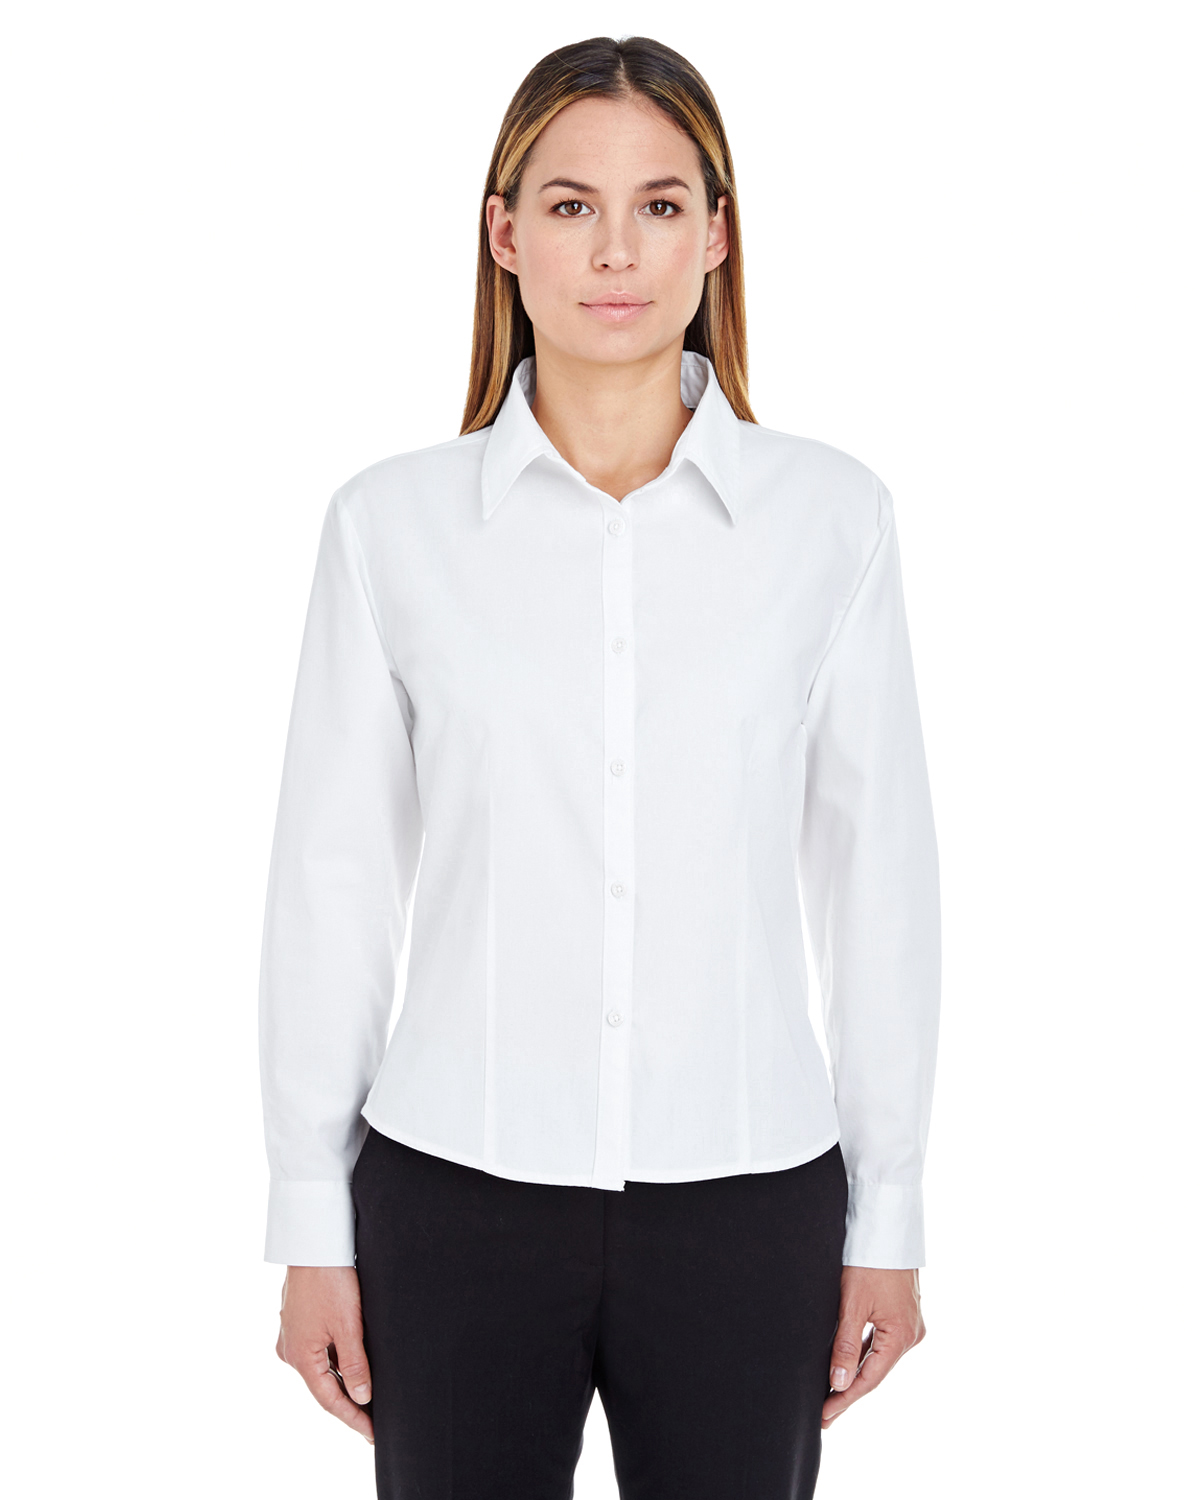 8976 UltraClub Ladies' Whisper Twill Shirt